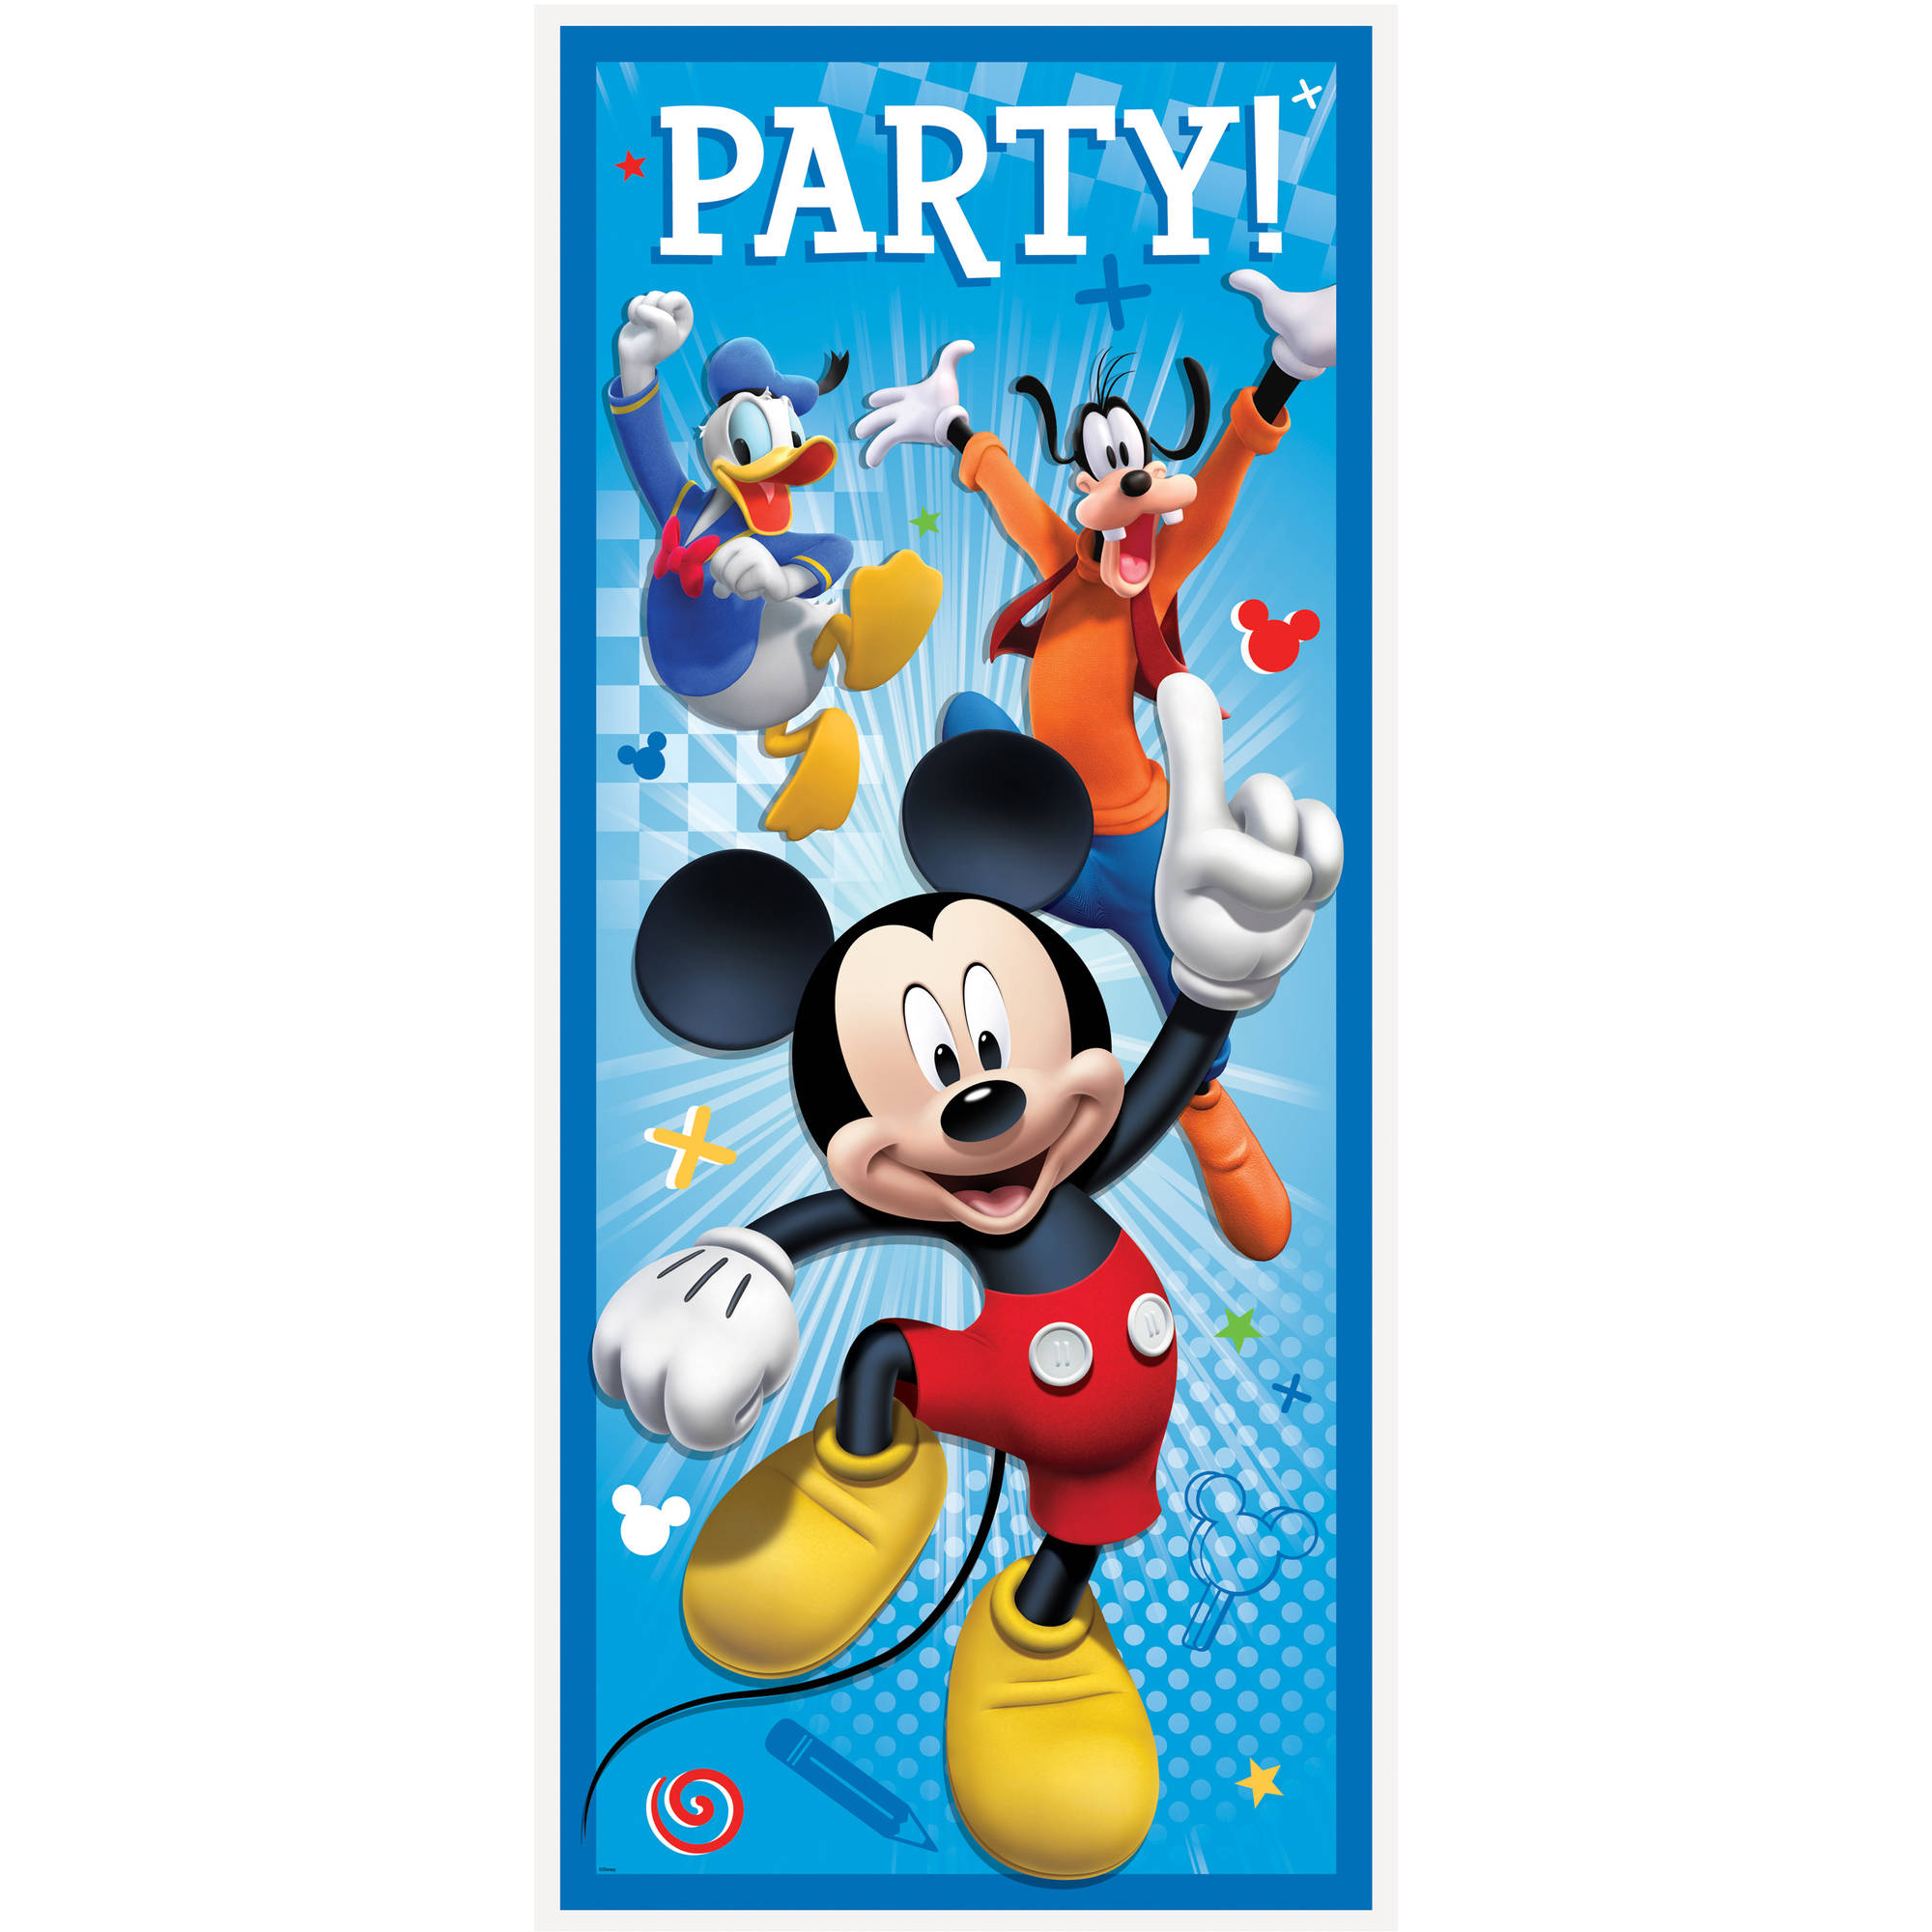 Plastic Mickey Mouse Door Poster Party Decoration, 60 x 27 in, 1ct